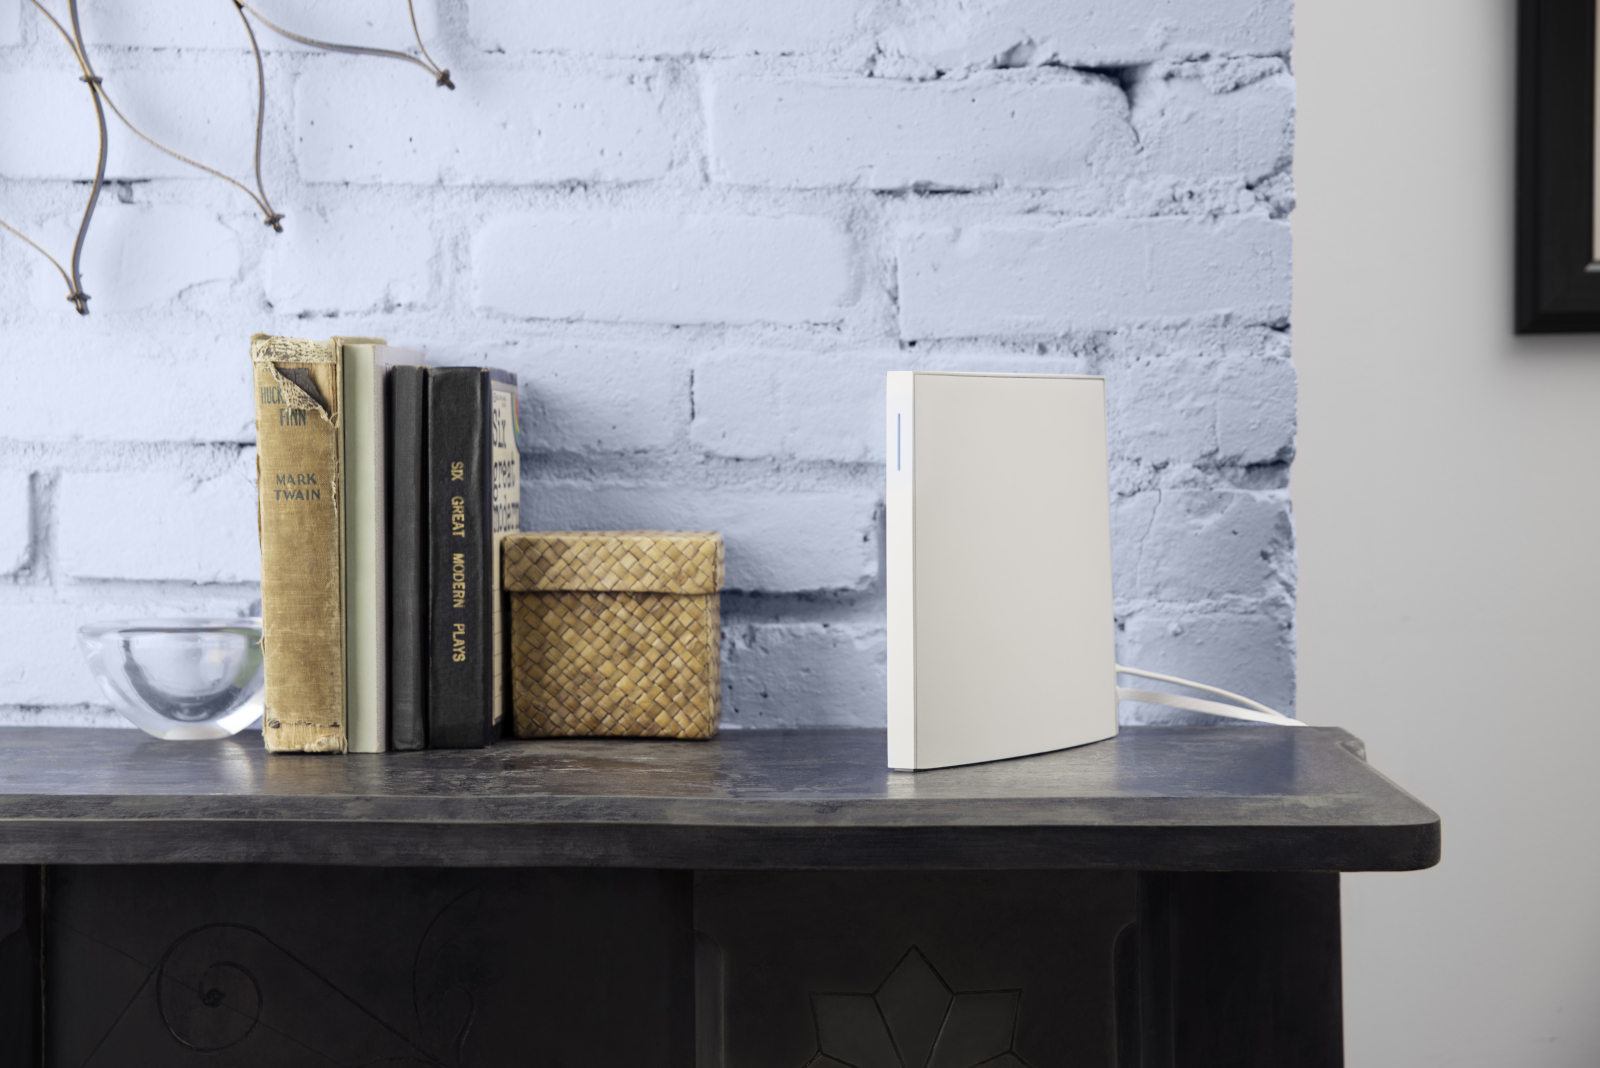 Wink's delayed smart home subscription plan kicks in July 27th